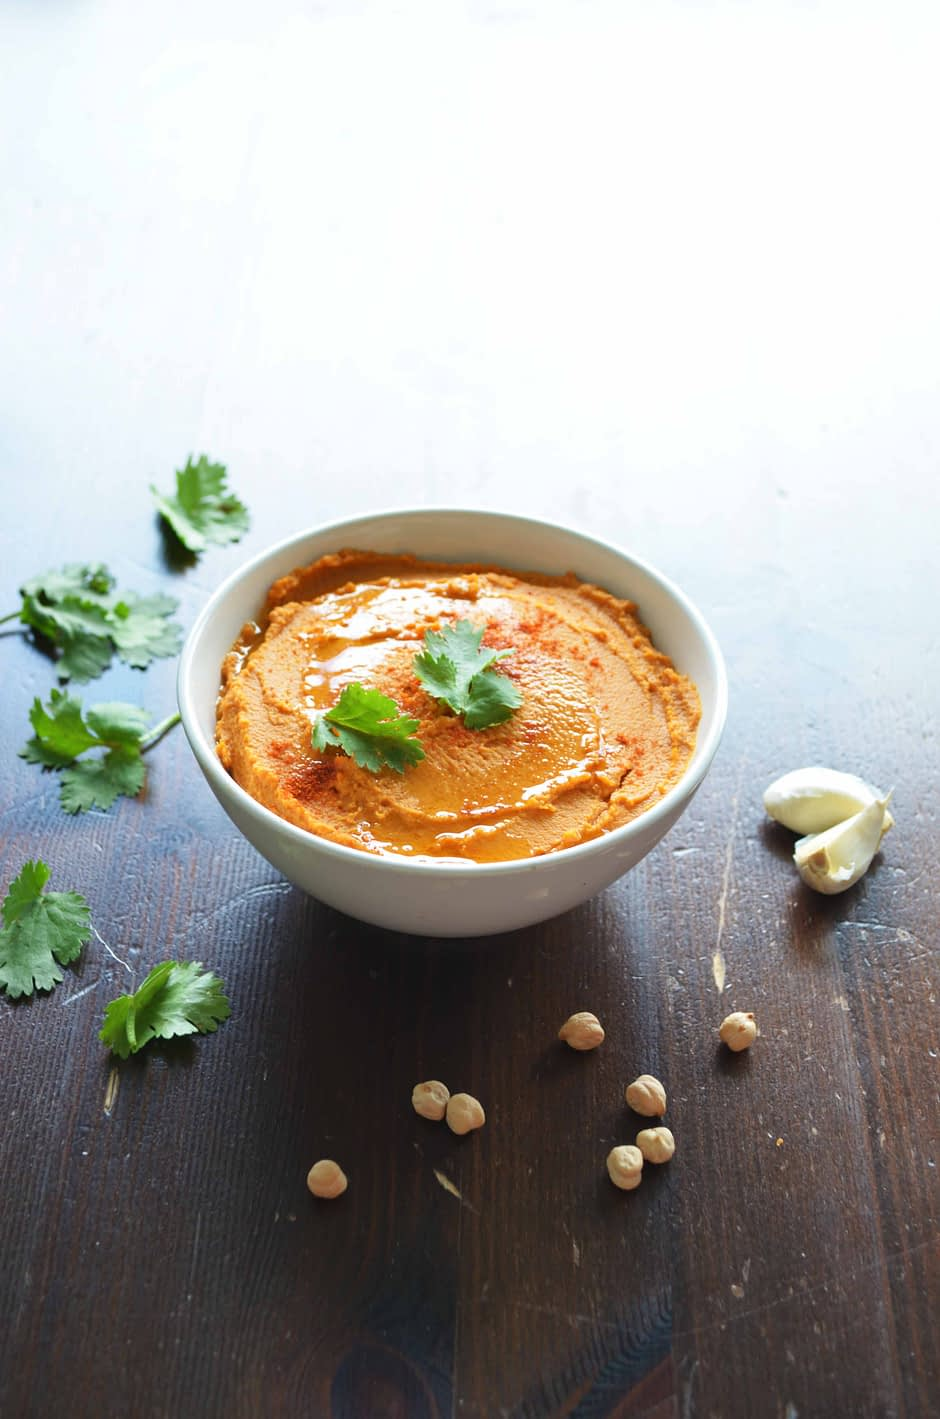 A white bowl filled with grilled red pepper (paprika) hummus, topped with cilantro. Recipe and photo by That Healthy Kitchen